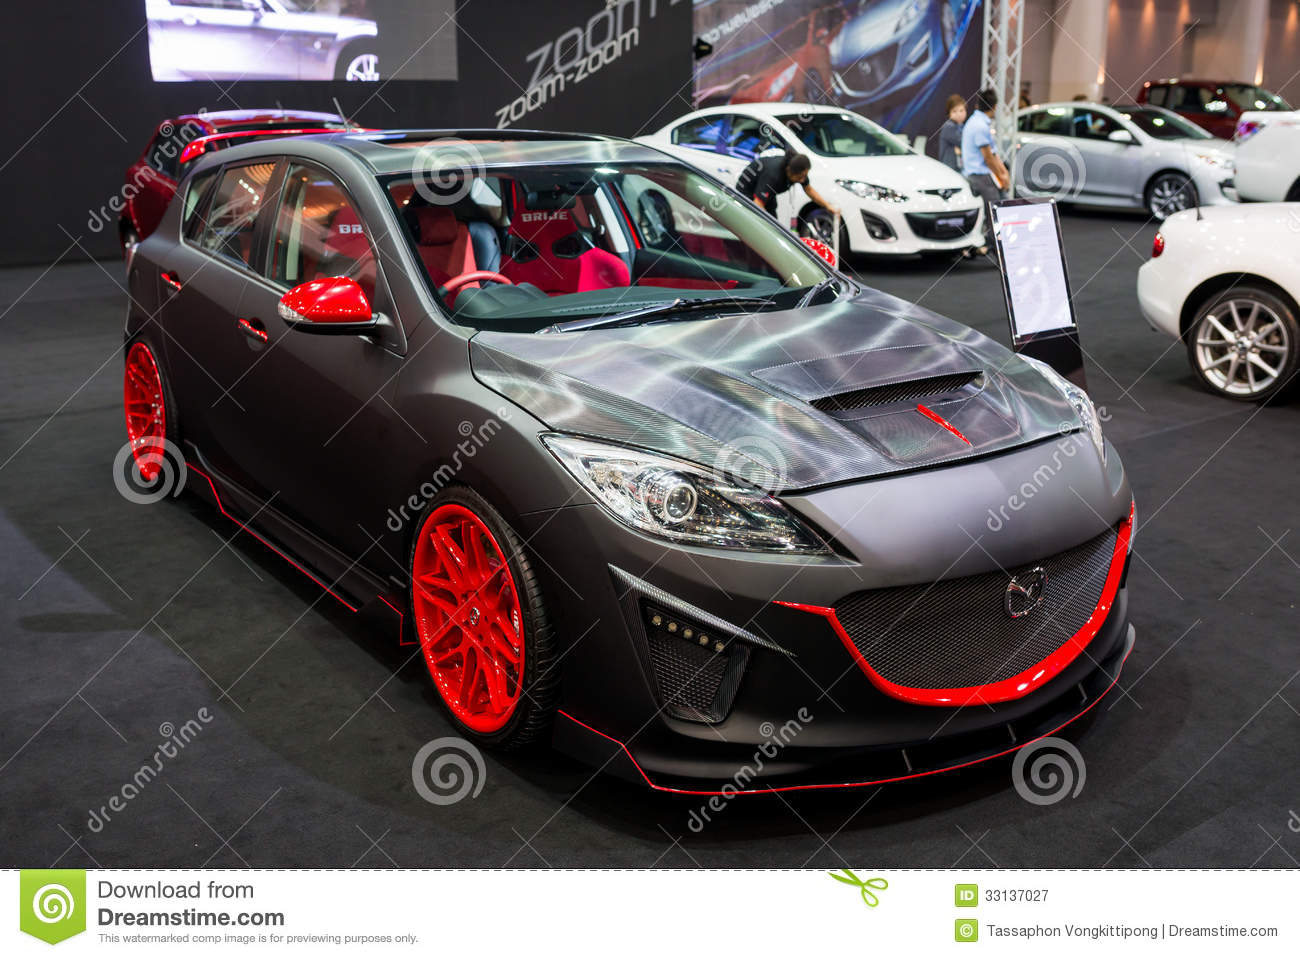 Modified mazda 3 on display editorial photography image for 3rd international salon of photography smederevo 2013